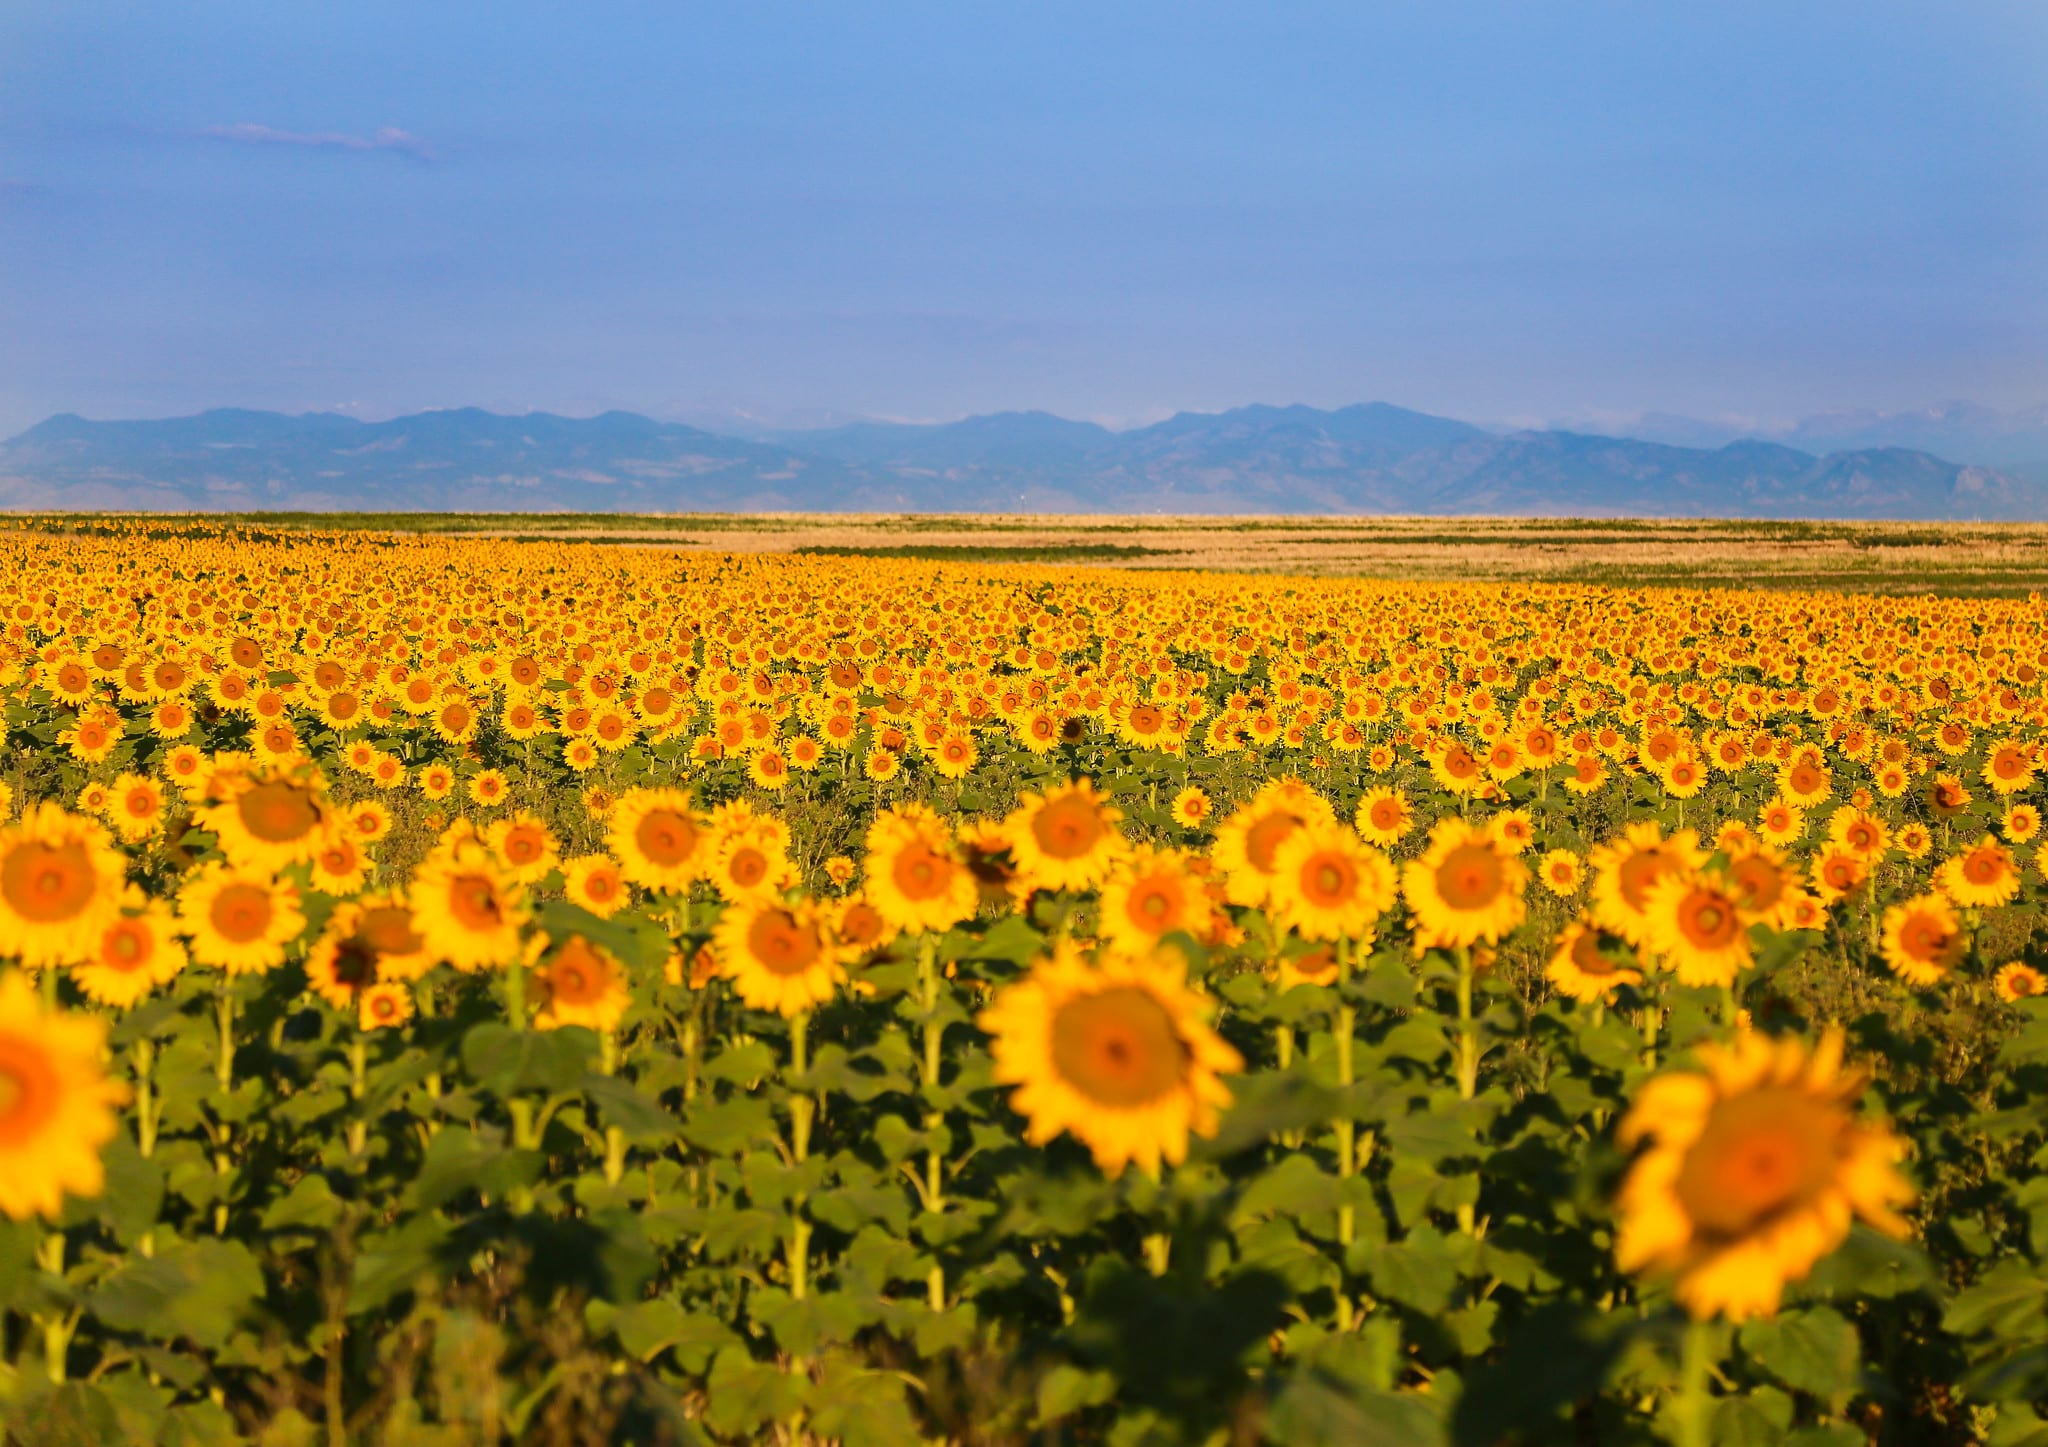 sunflowers at denver international airport